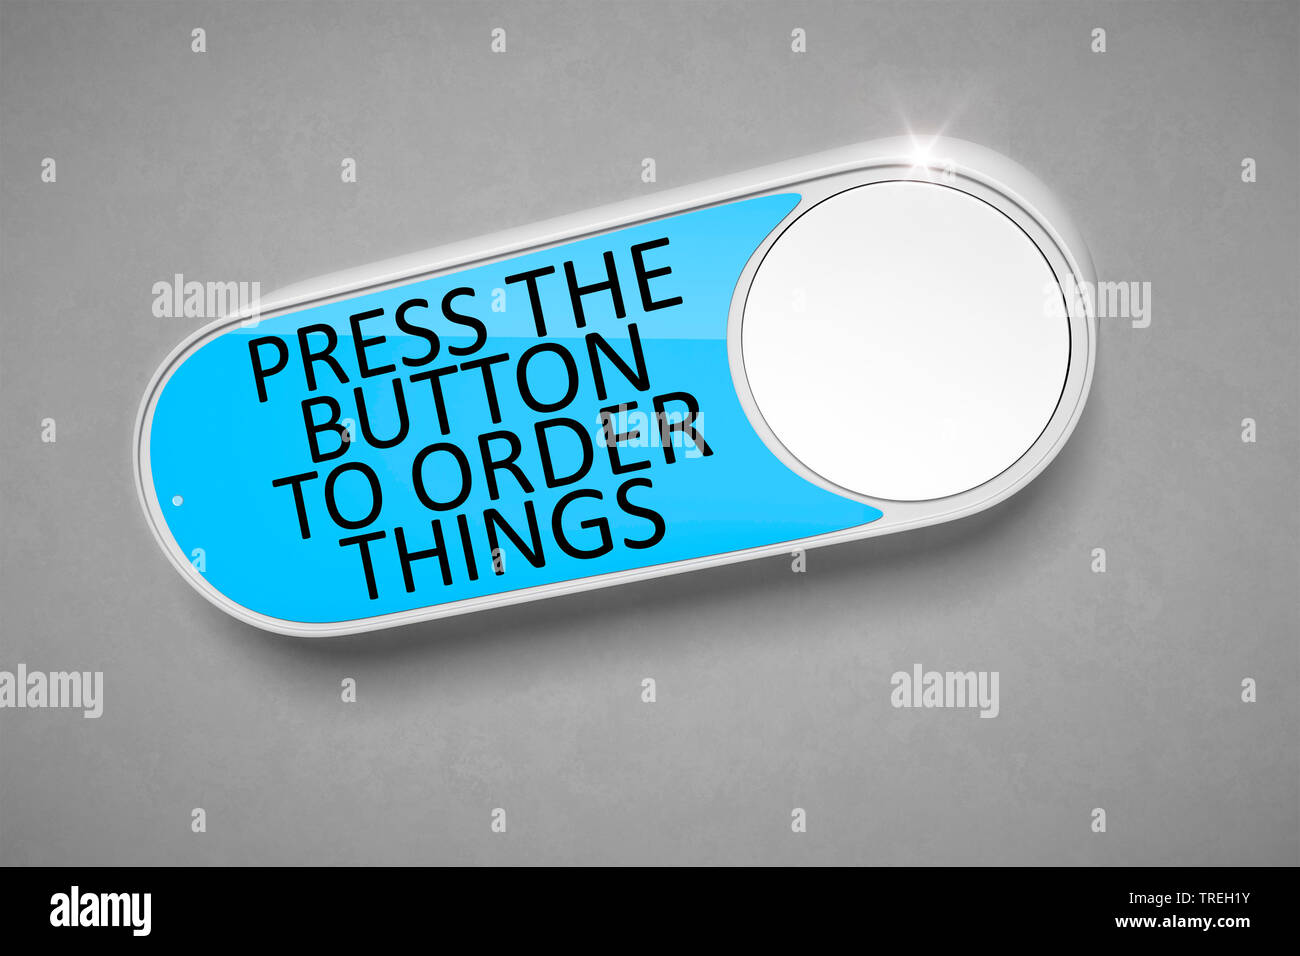 3D computer graphic, symbolic button lettering ORDER THINGS Stock Photo